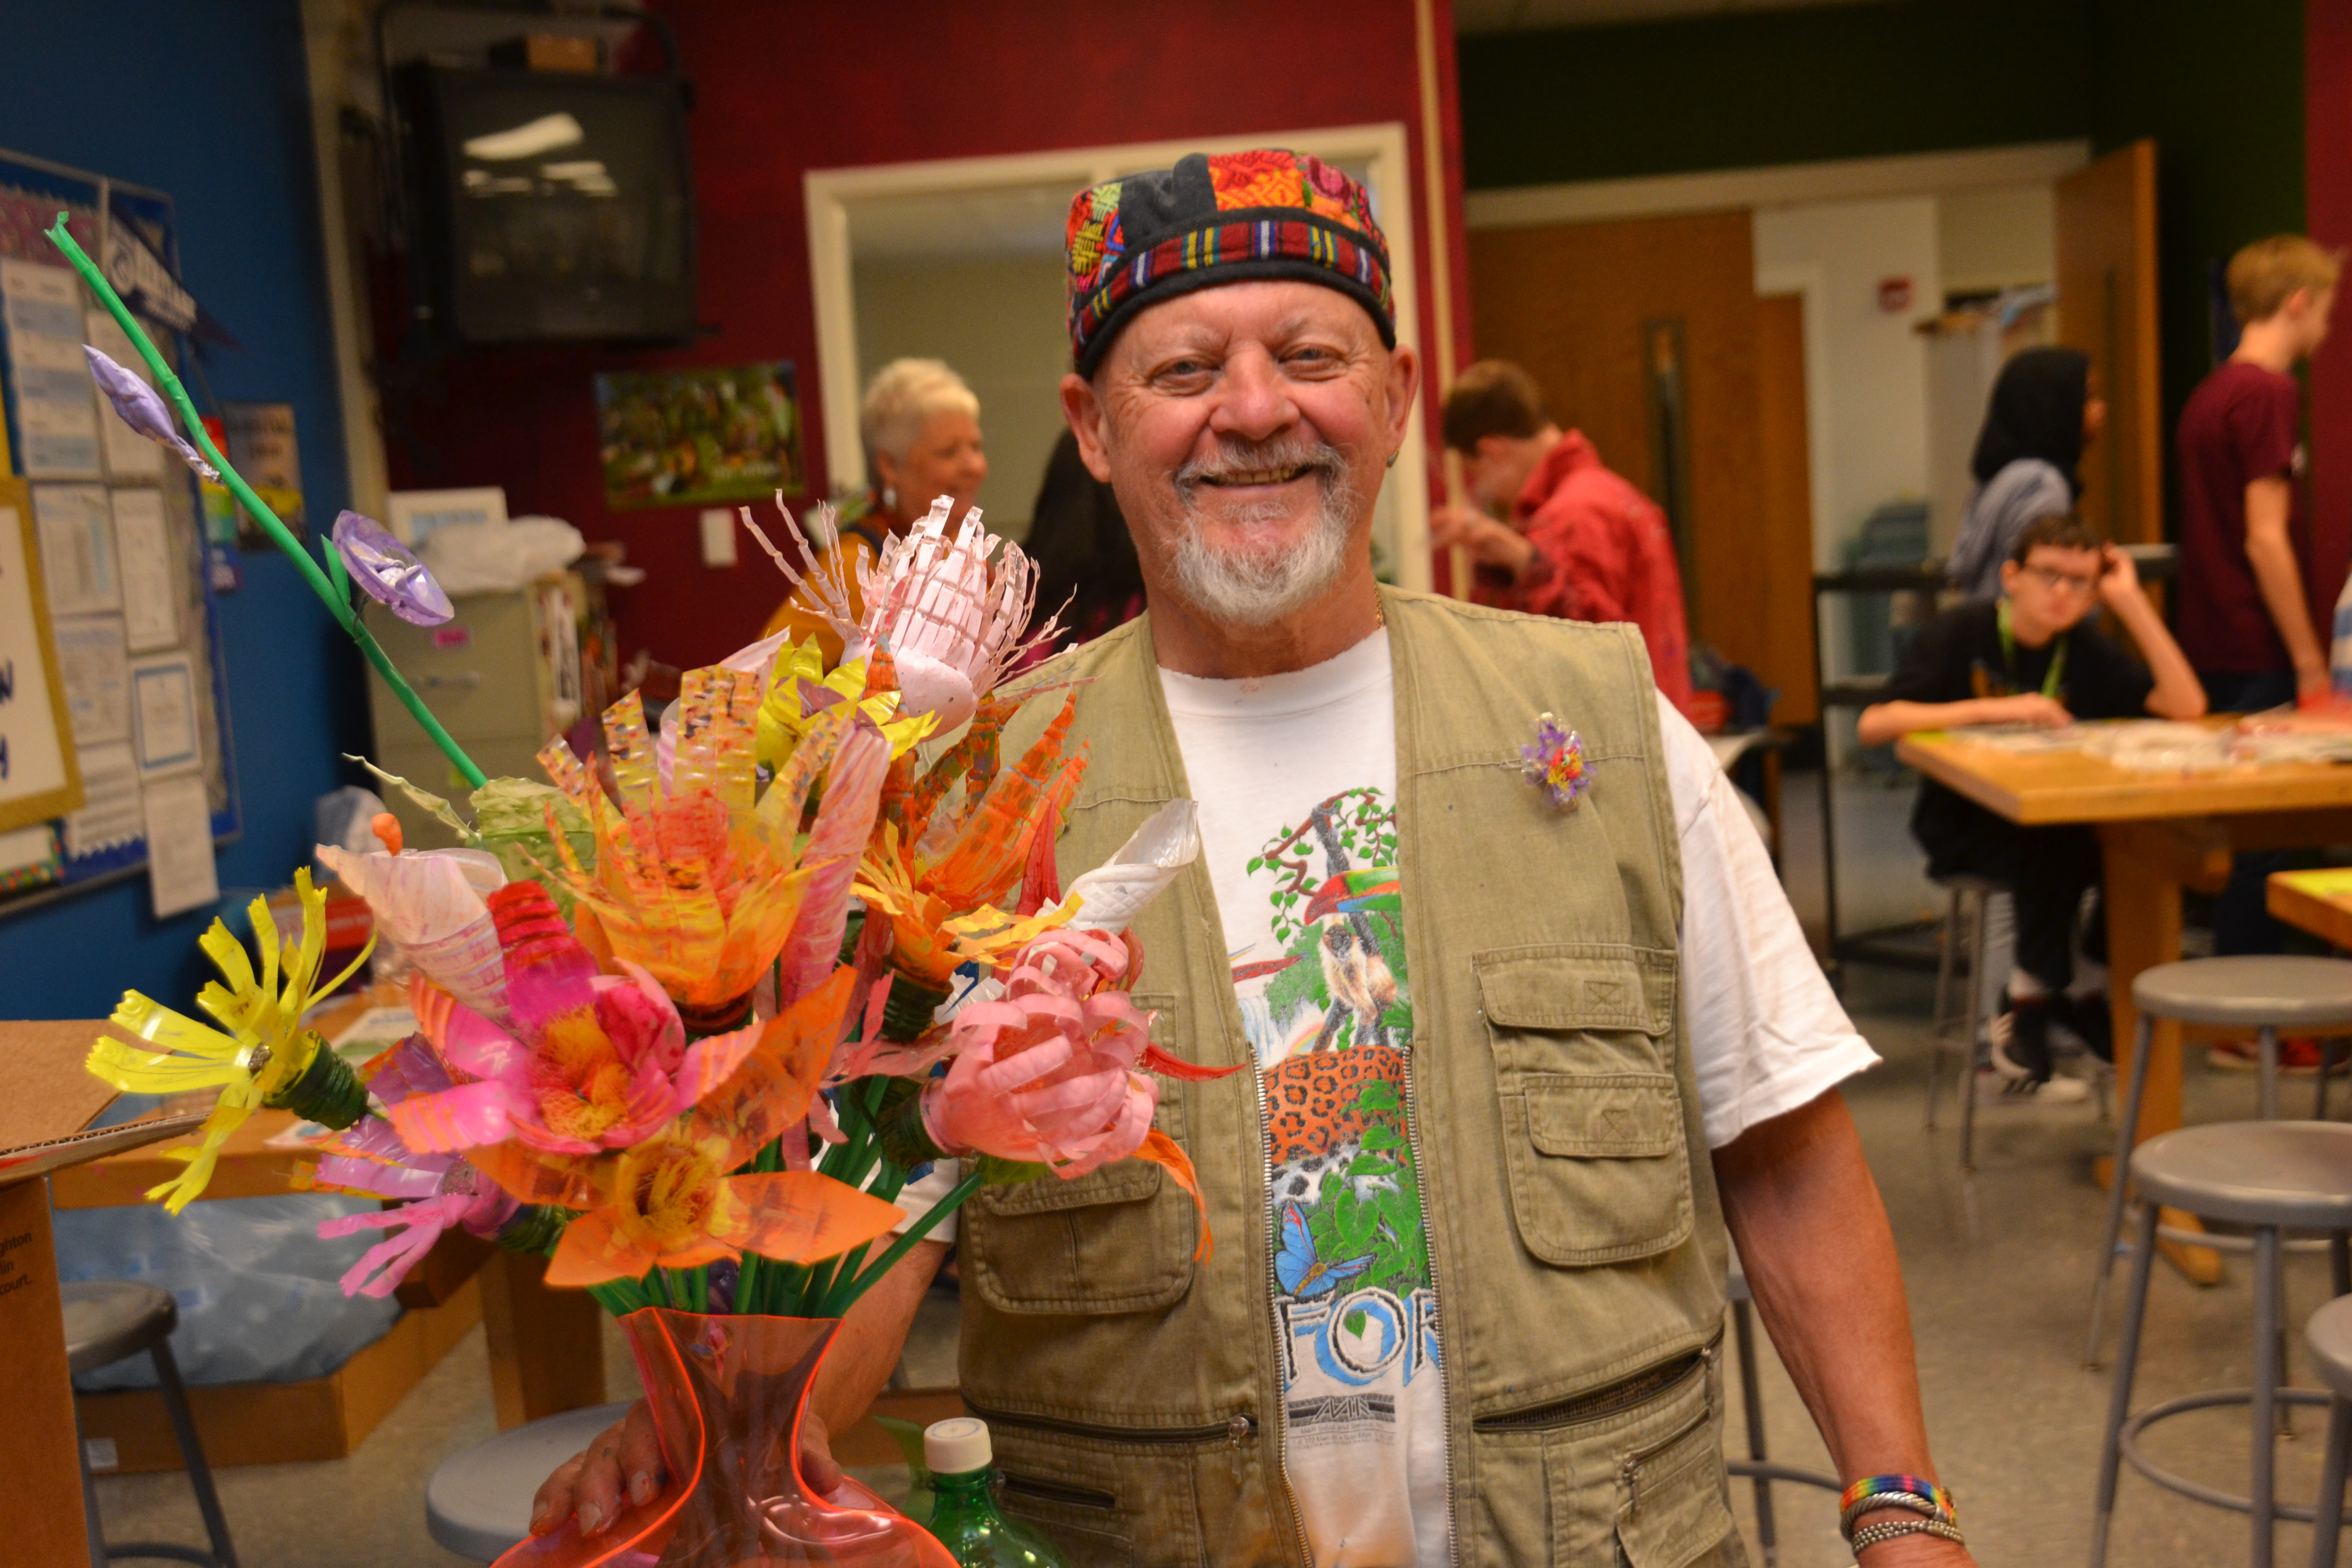 Artist Eric Marlow holding a beautiful floral arrangement using plastic water bottles and two-liter jugs.